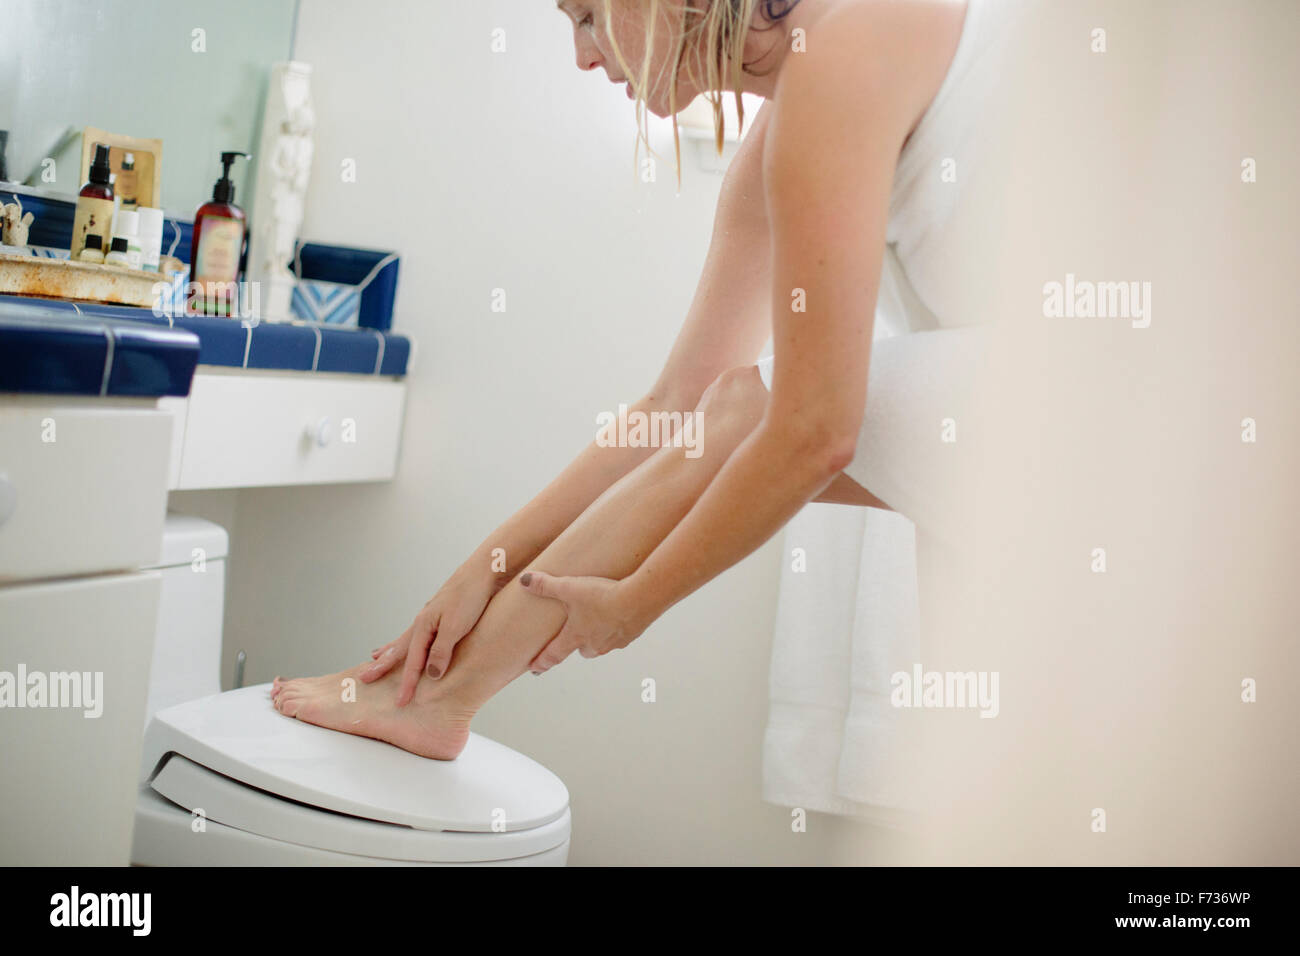 Woman wrapped in a white towel standing in a bathroom, applying lotion to her leg. - Stock Image